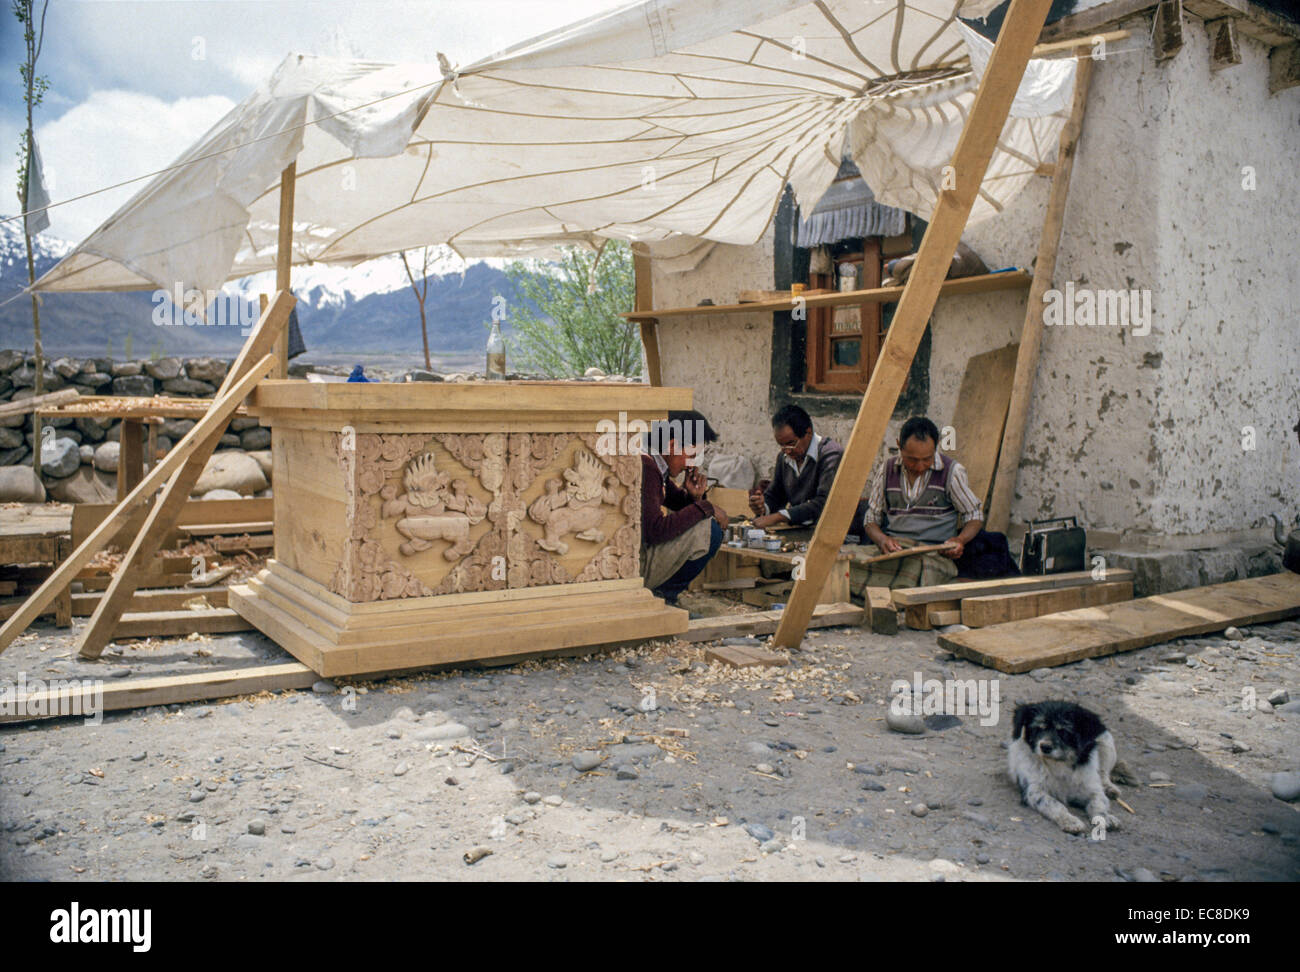 Carpenters carving a large decorative wood pedestal for a wealthy family or monastery in Leh, Ladakh. - Stock Image